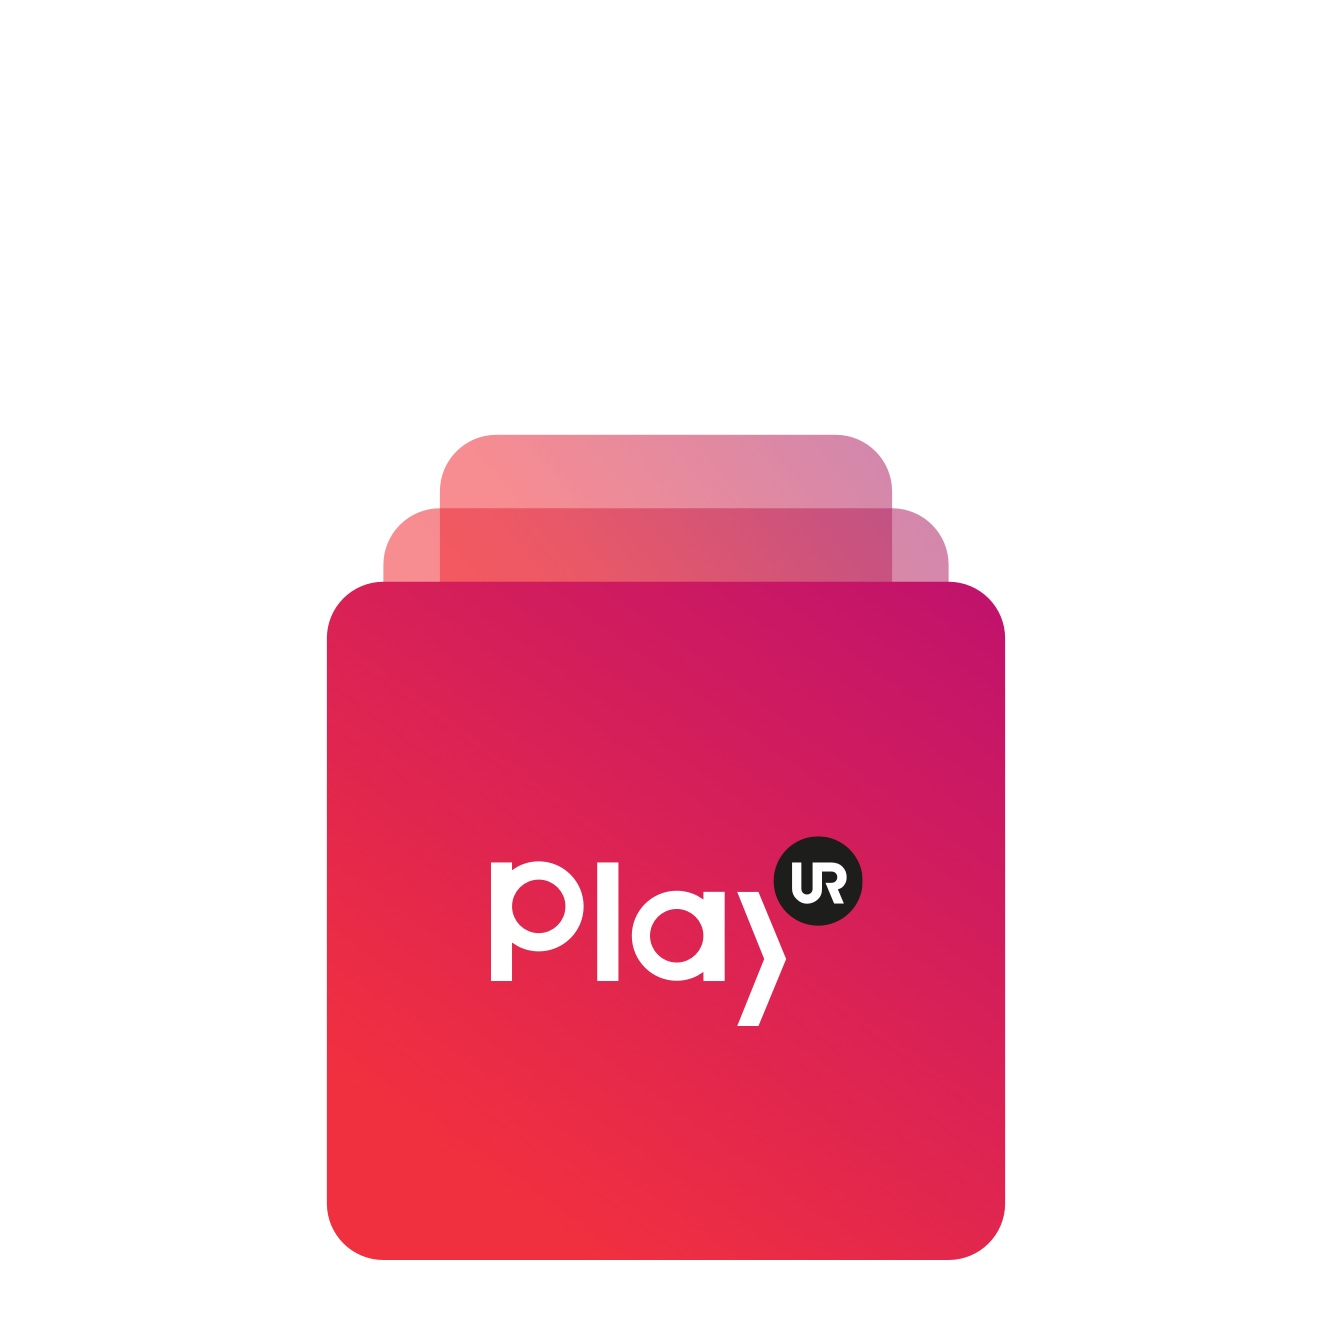 UR Play – Taking user insights to identity work and product design